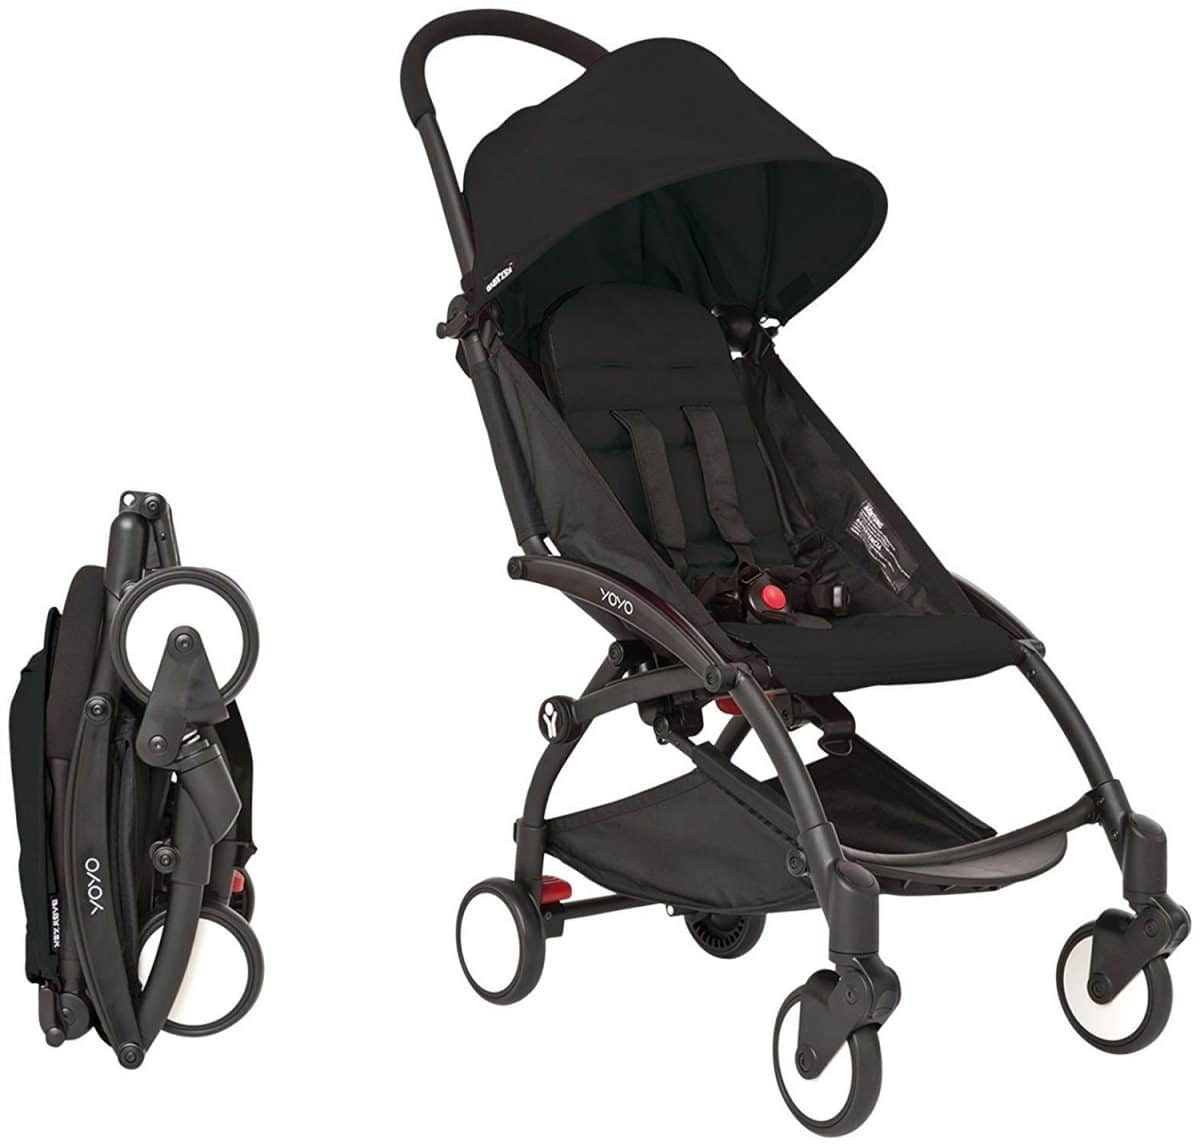 Toddler Stroller India The 10 Best Travel Strollers To Buy 2019 Littleonemag